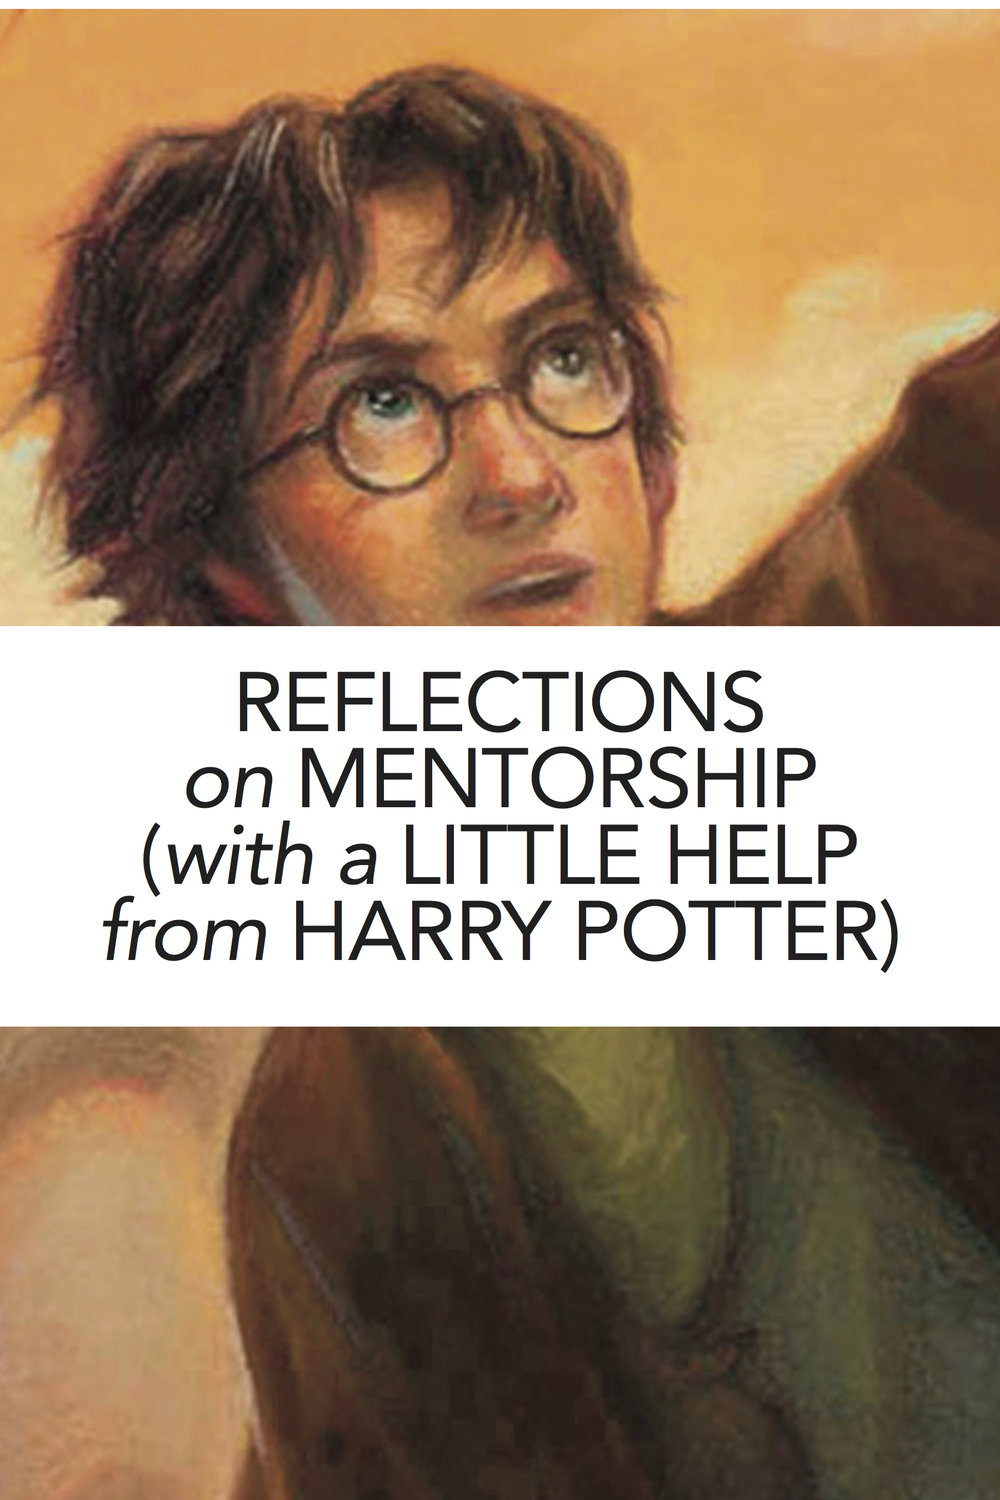 Reflections on Mentorship (with a Little Help from Harry Potter)